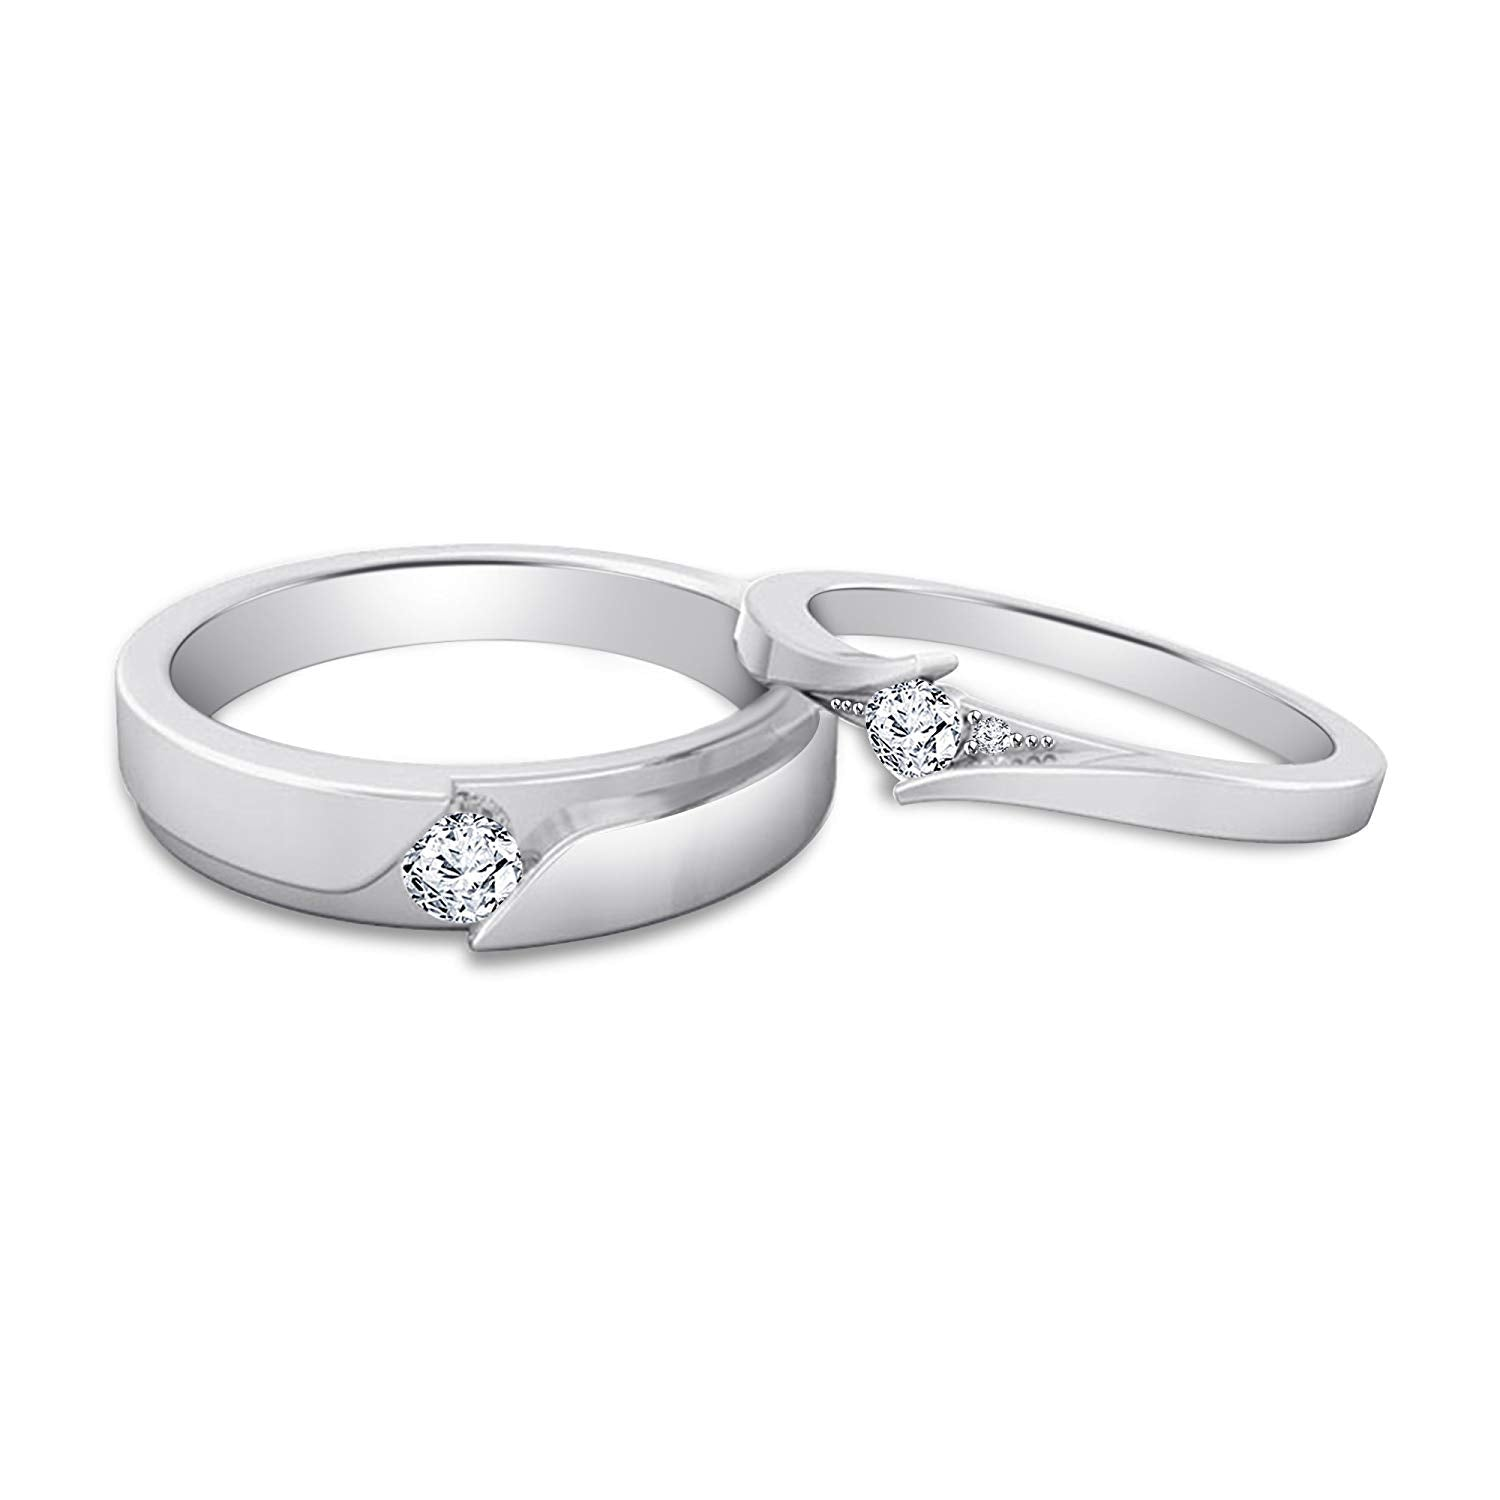 921e3ea10b ... 925 Sterling Silver Elegant Couple Heart Ring. Size Charts. Ring Size